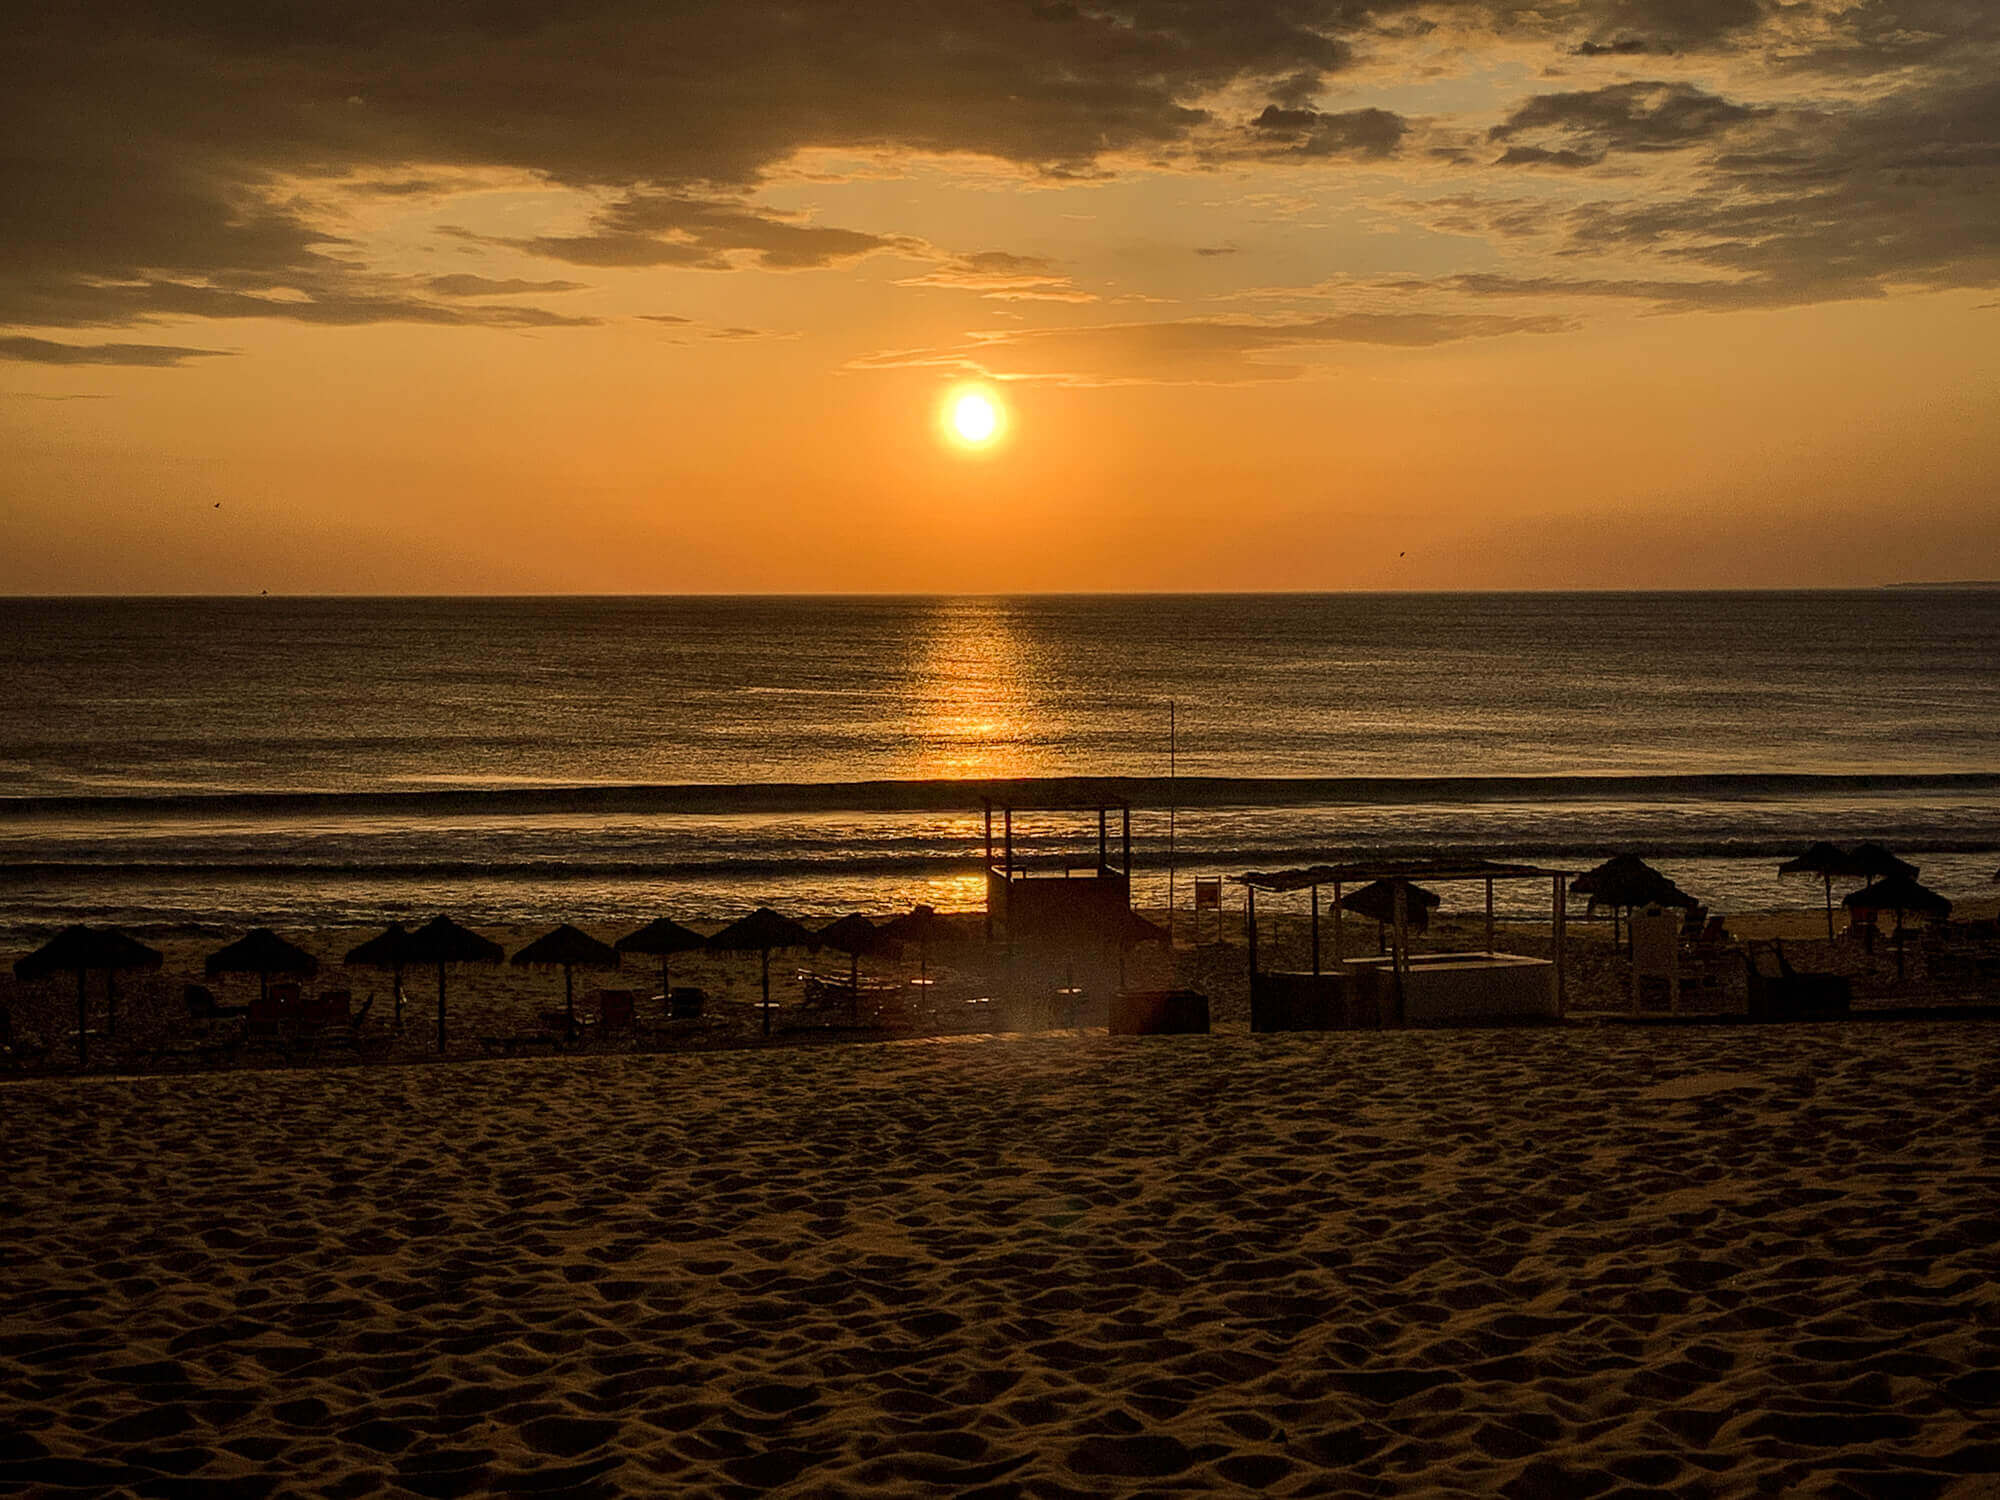 Sun setting at Pego Beach Comporta